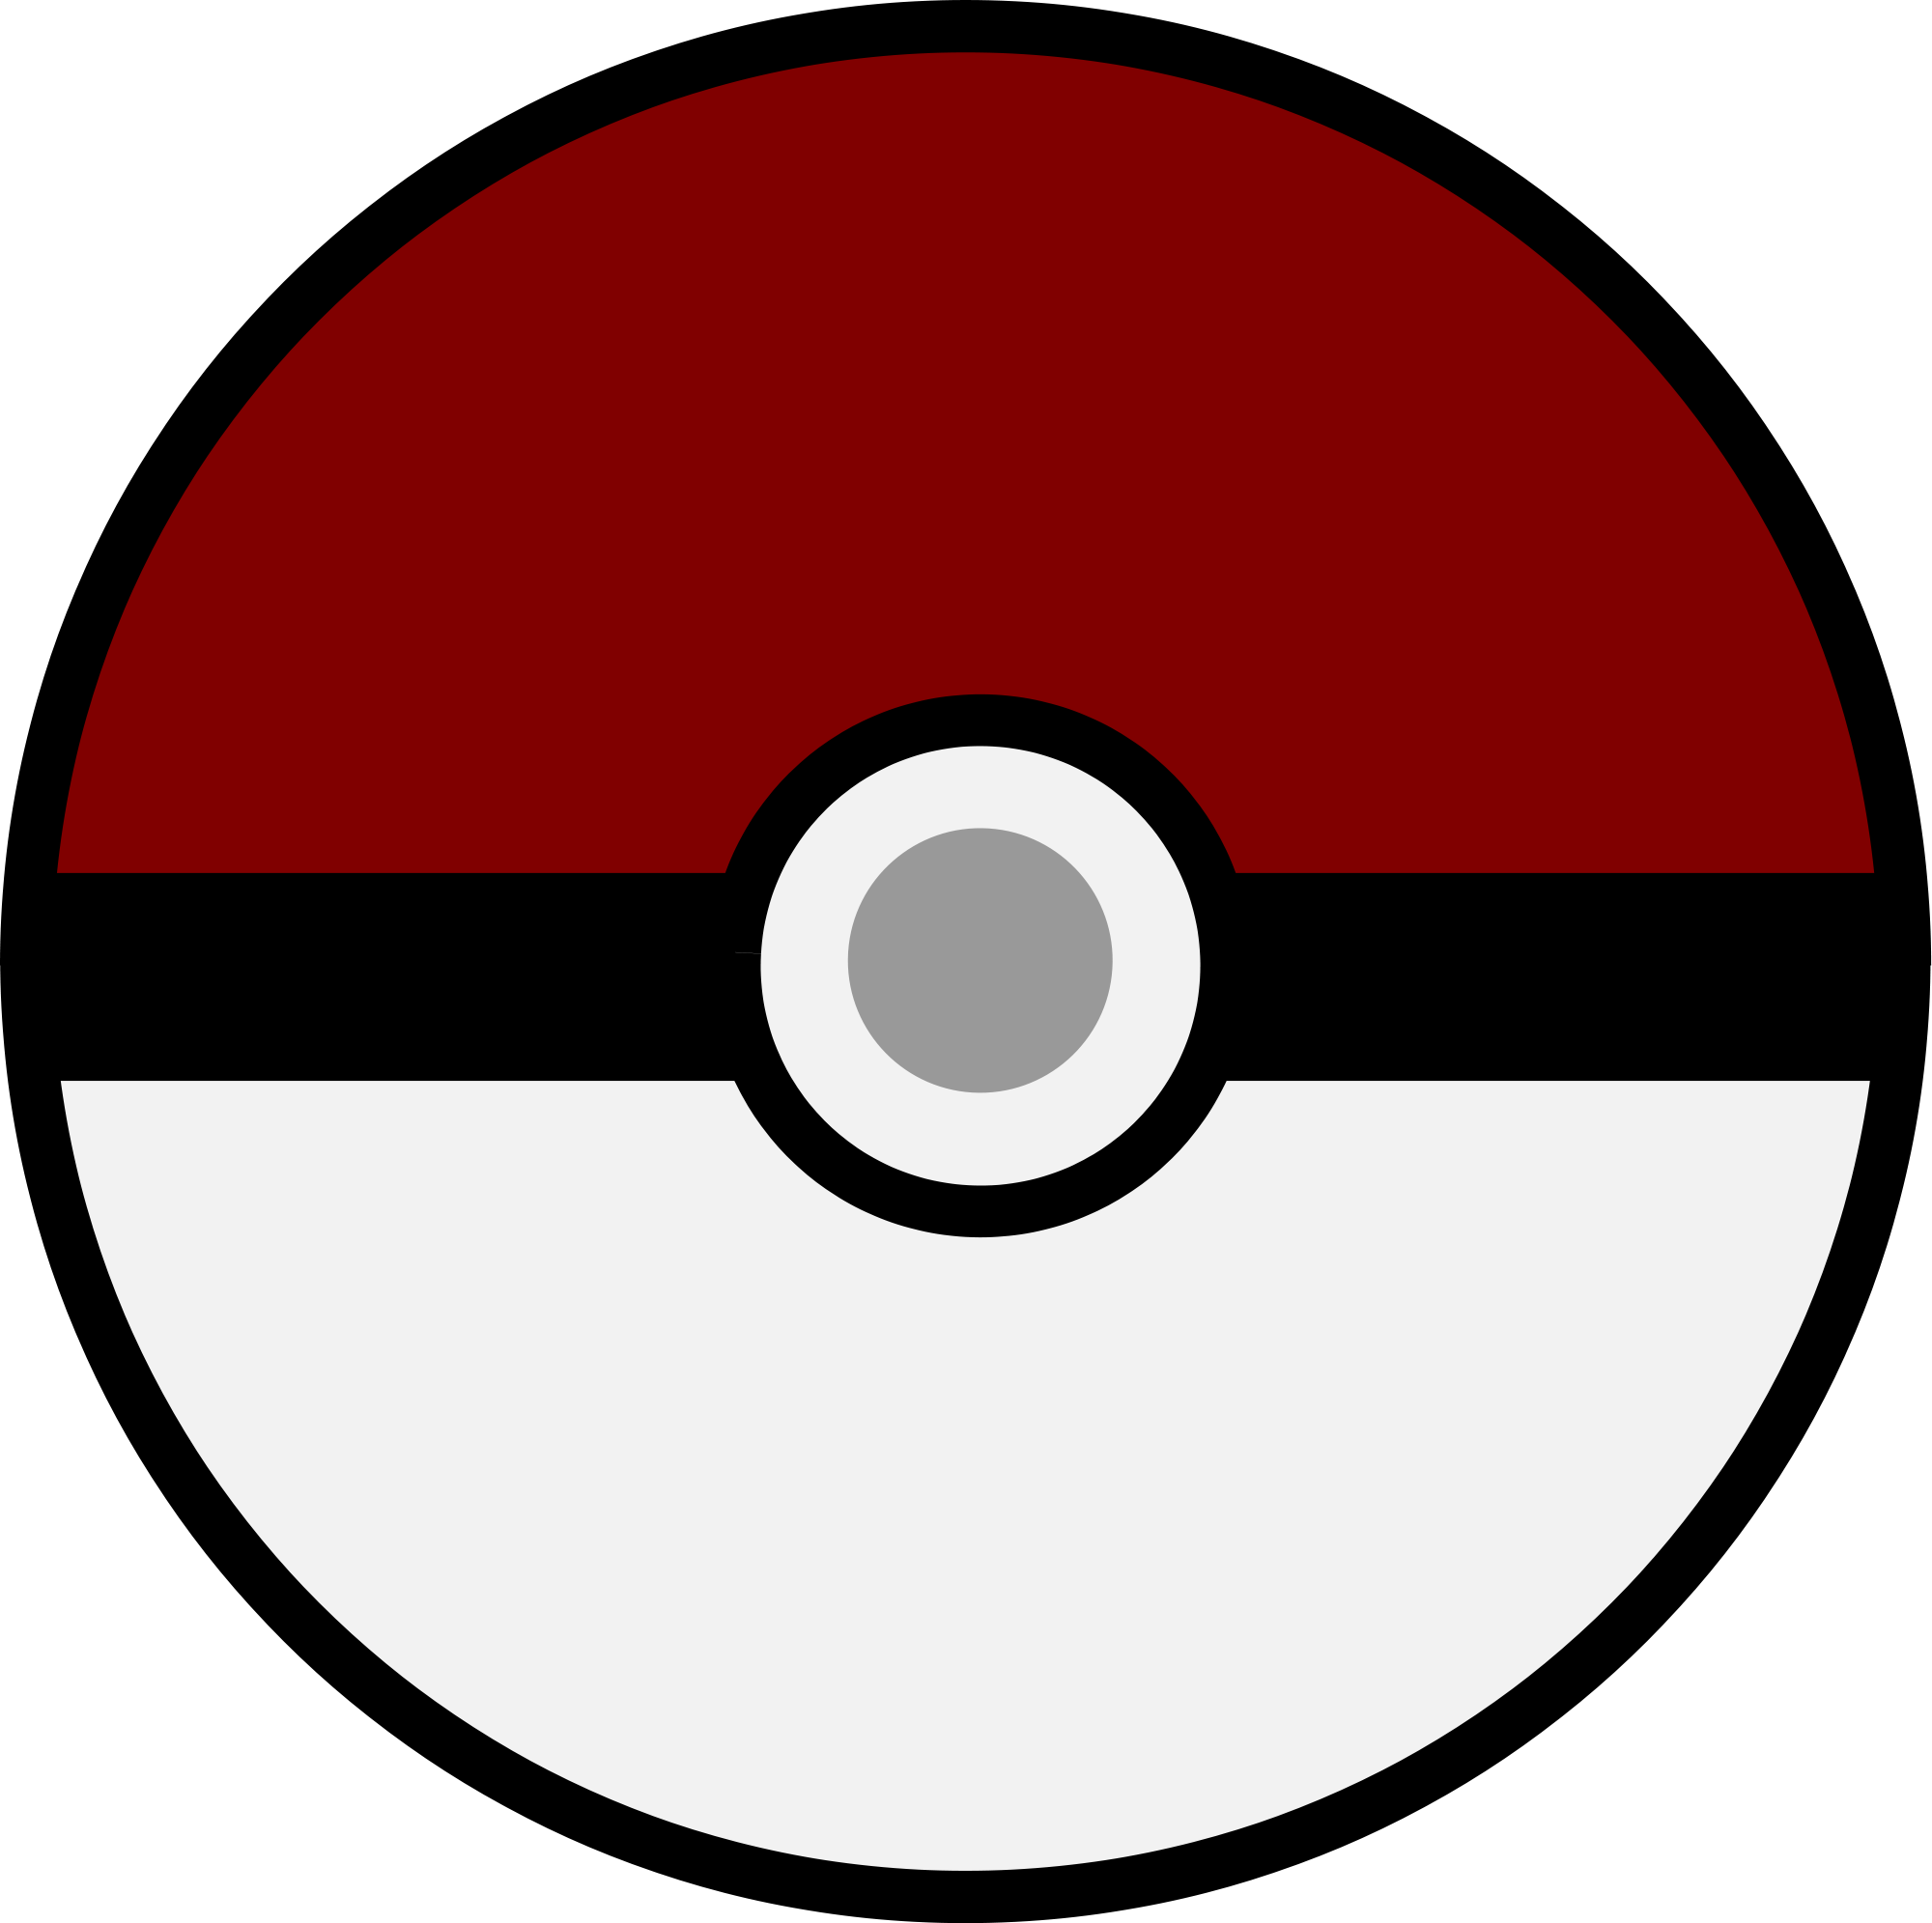 Pokeball clipart outline. Gallery svg drawing art